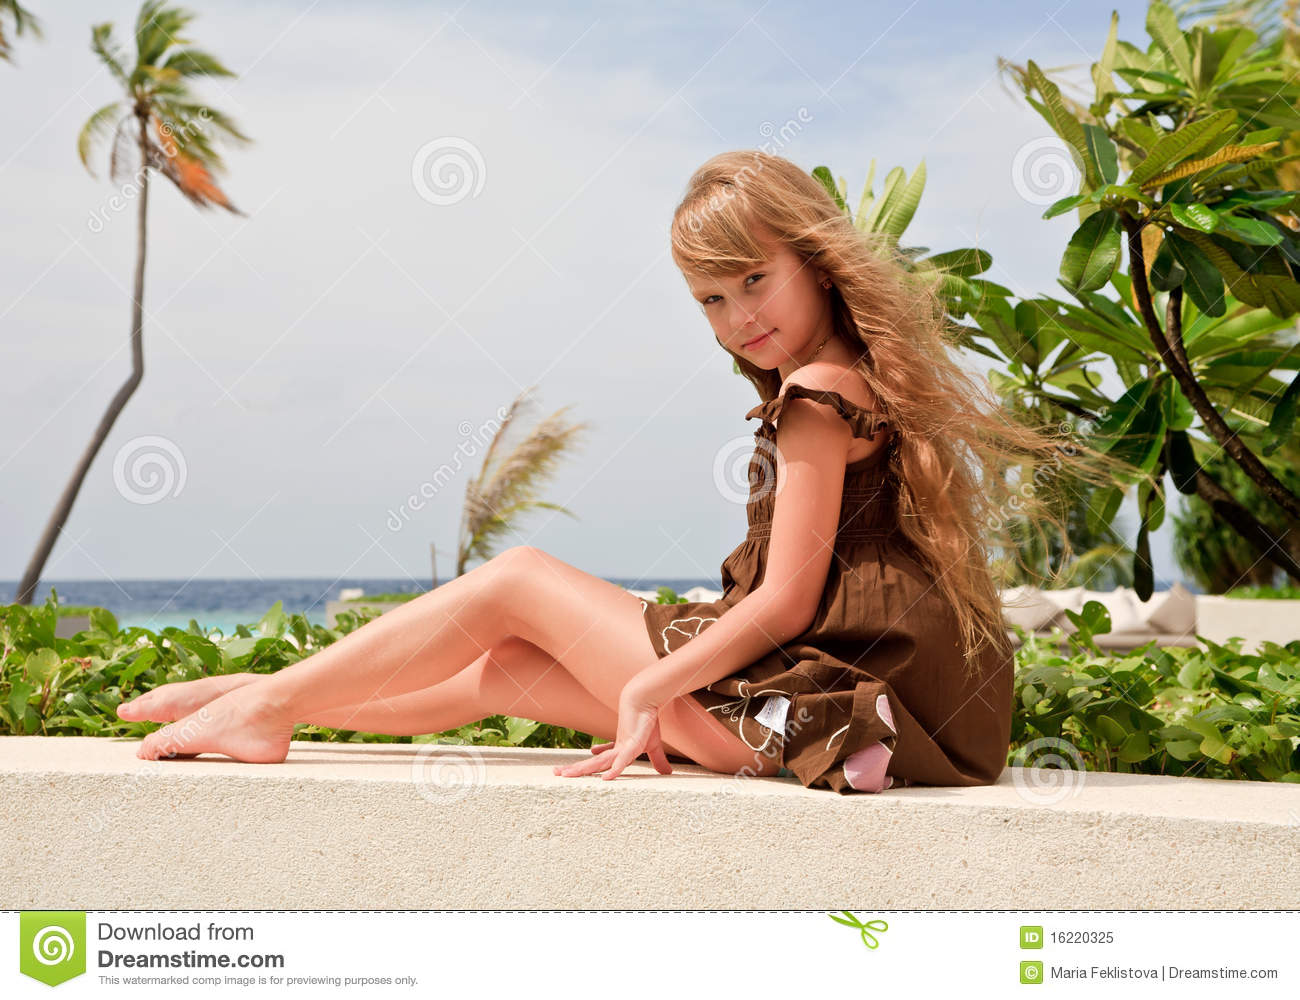 Royalty Free Stock Photo: Little girl sitting near ocean